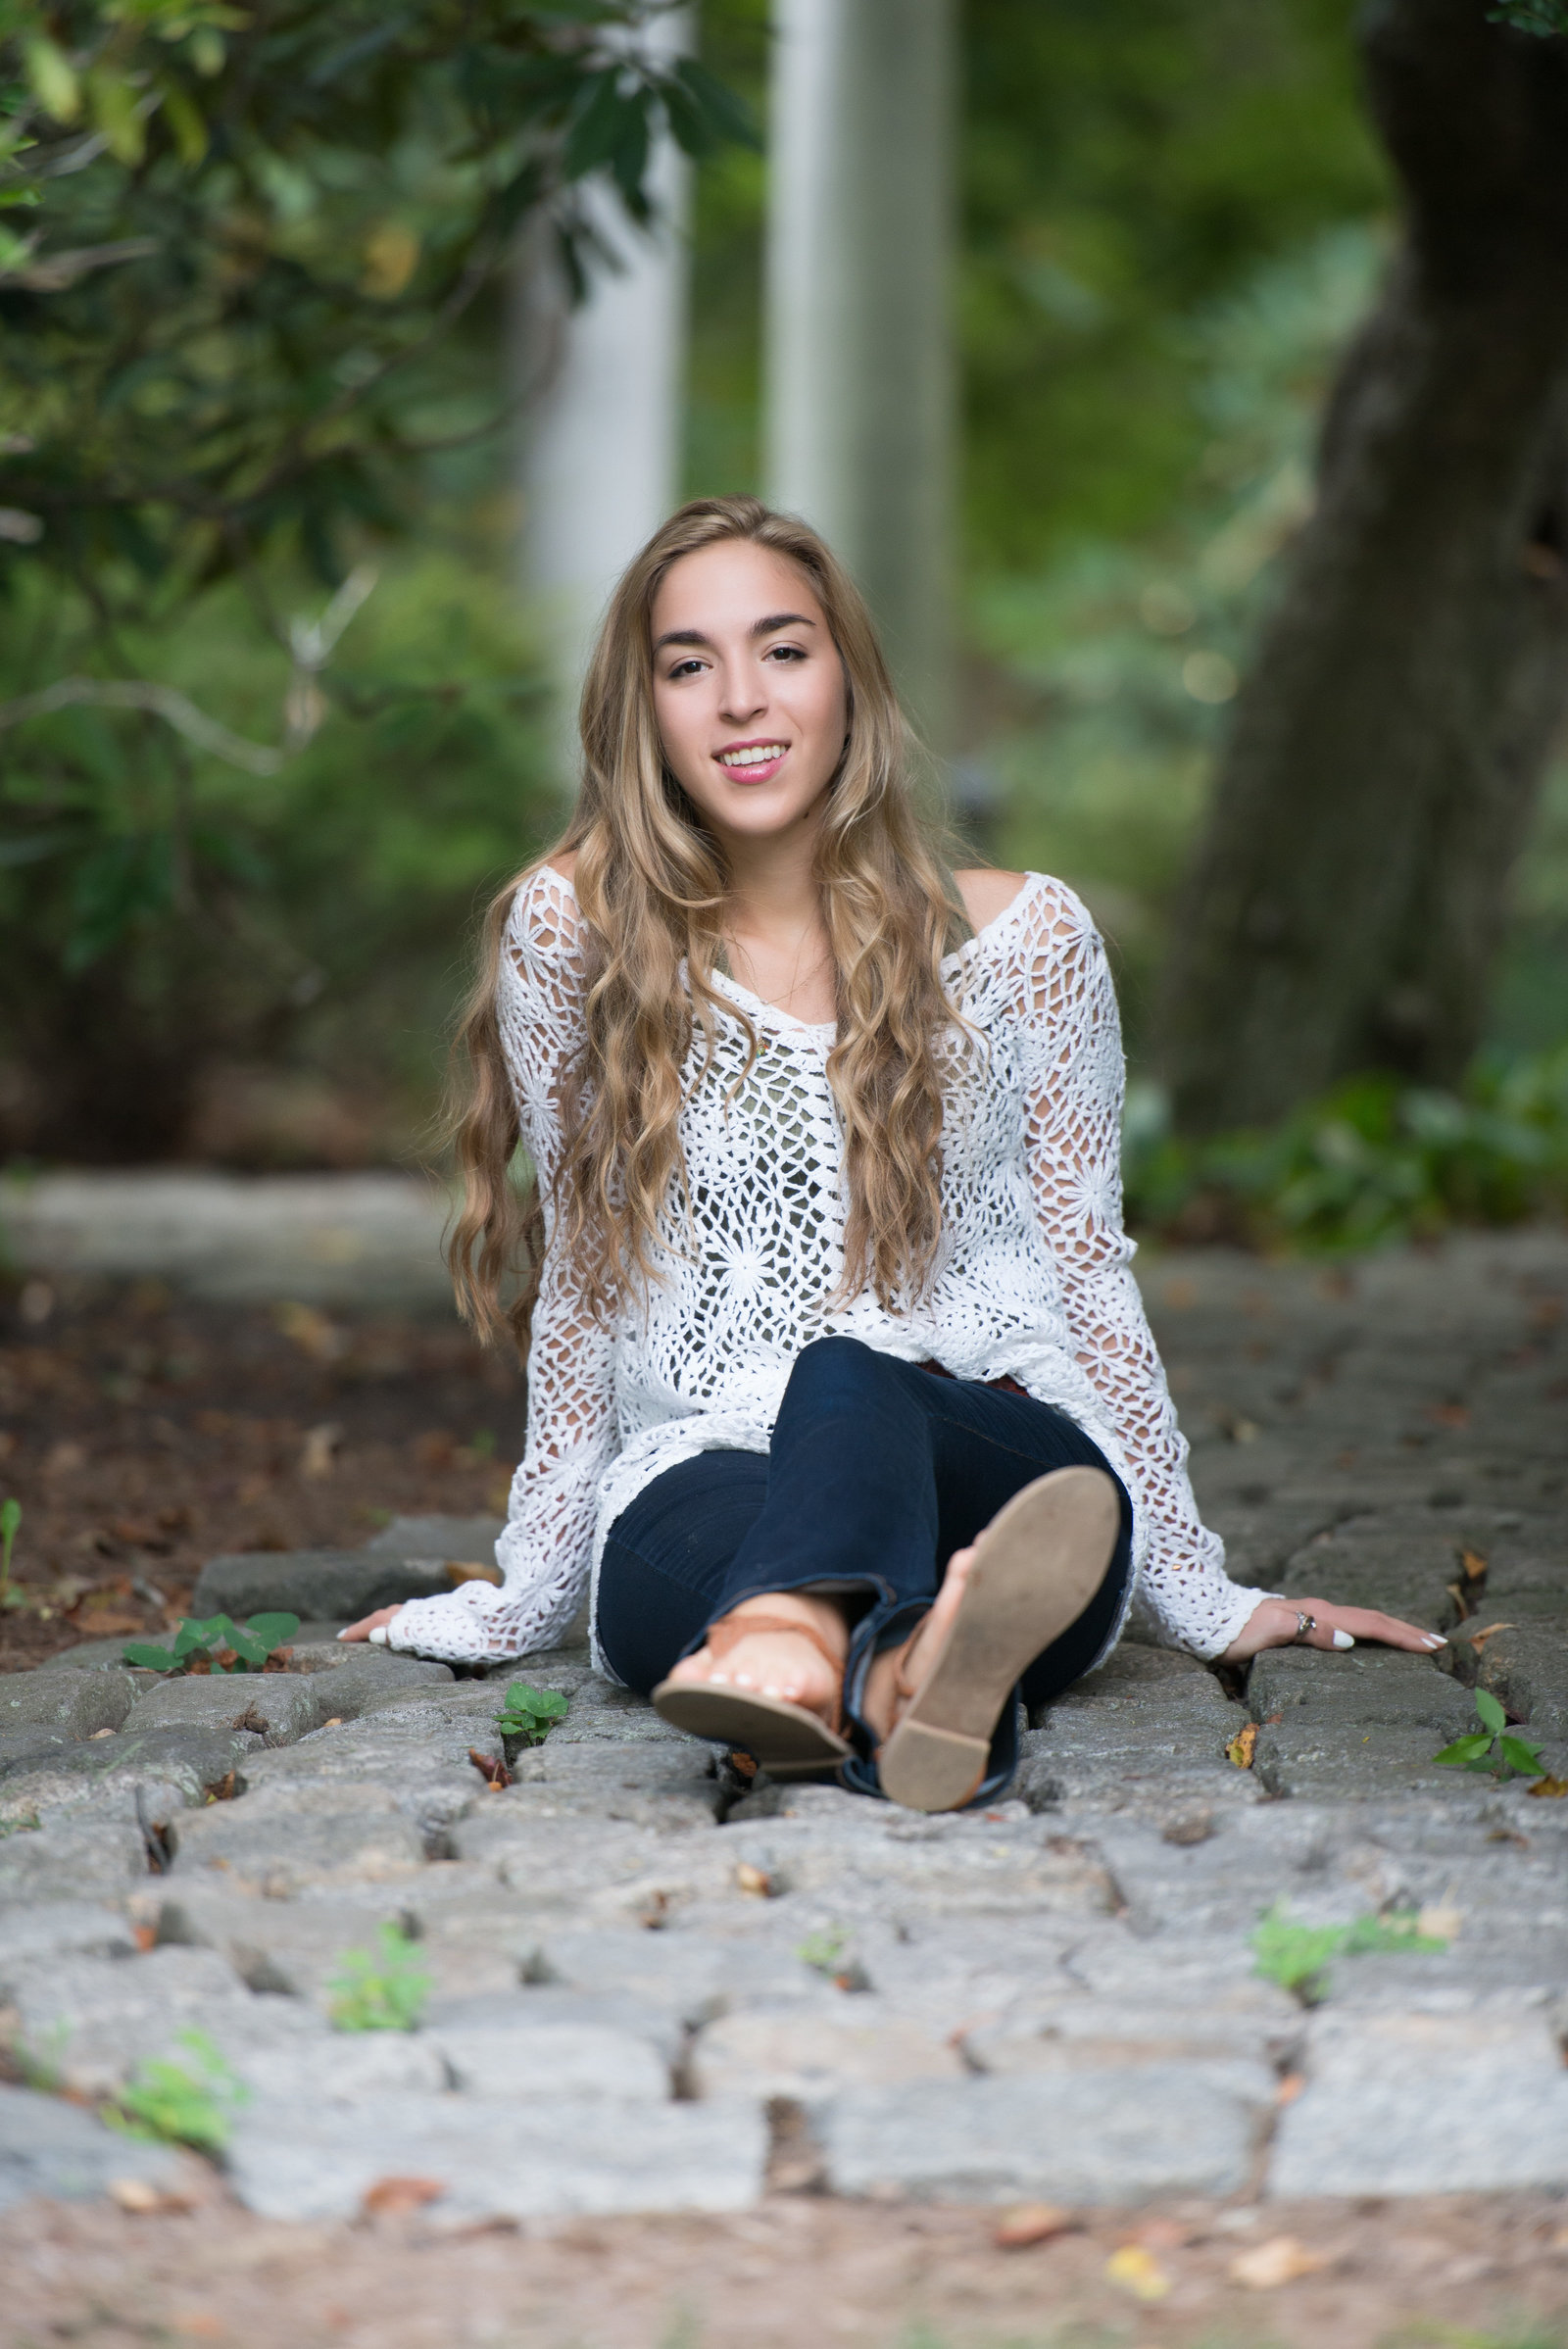 Fun Senior portraits by Dottie Foley Photography | Chester County Senior Photographer serving the Main Line including West Chester